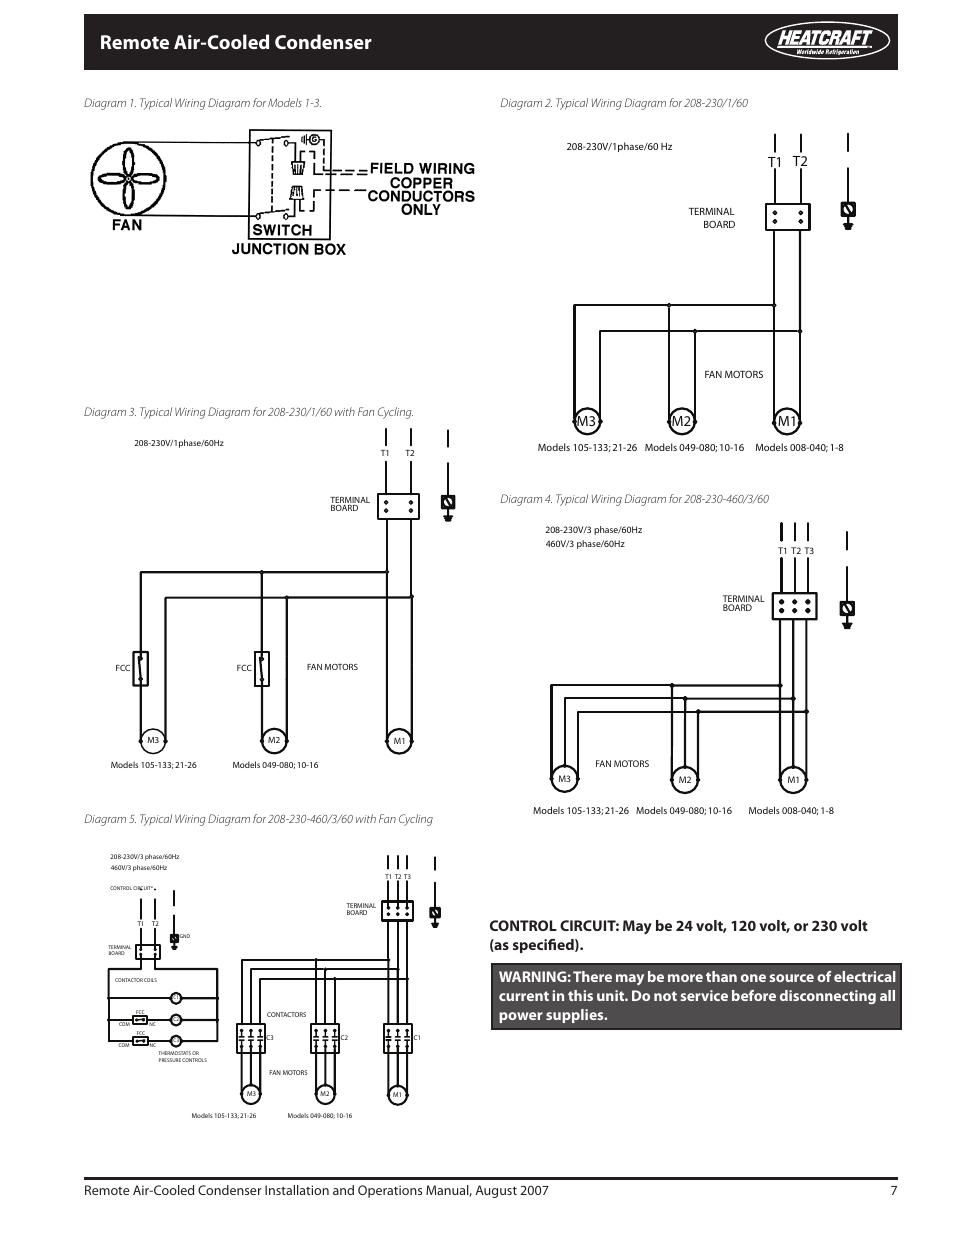 Bohn Freezer Wiring Diagrams. Chest Freezer Diagrams